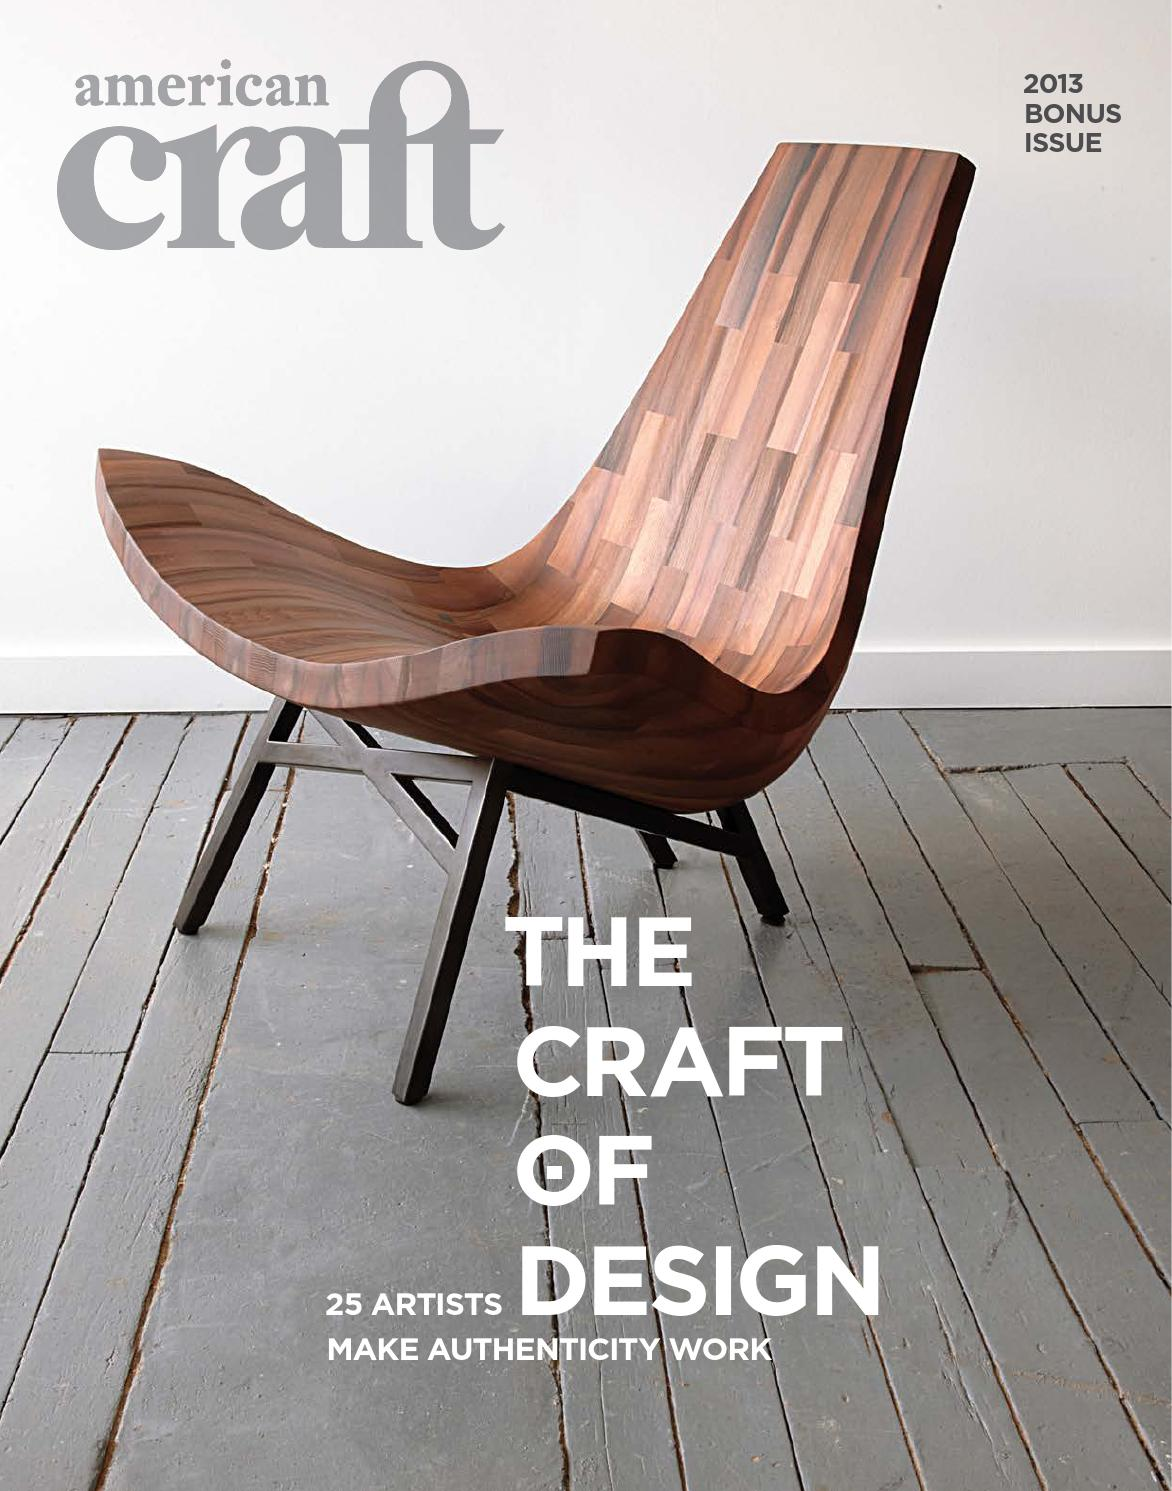 American Craft Design 2013 By American Craft Council   Issuu